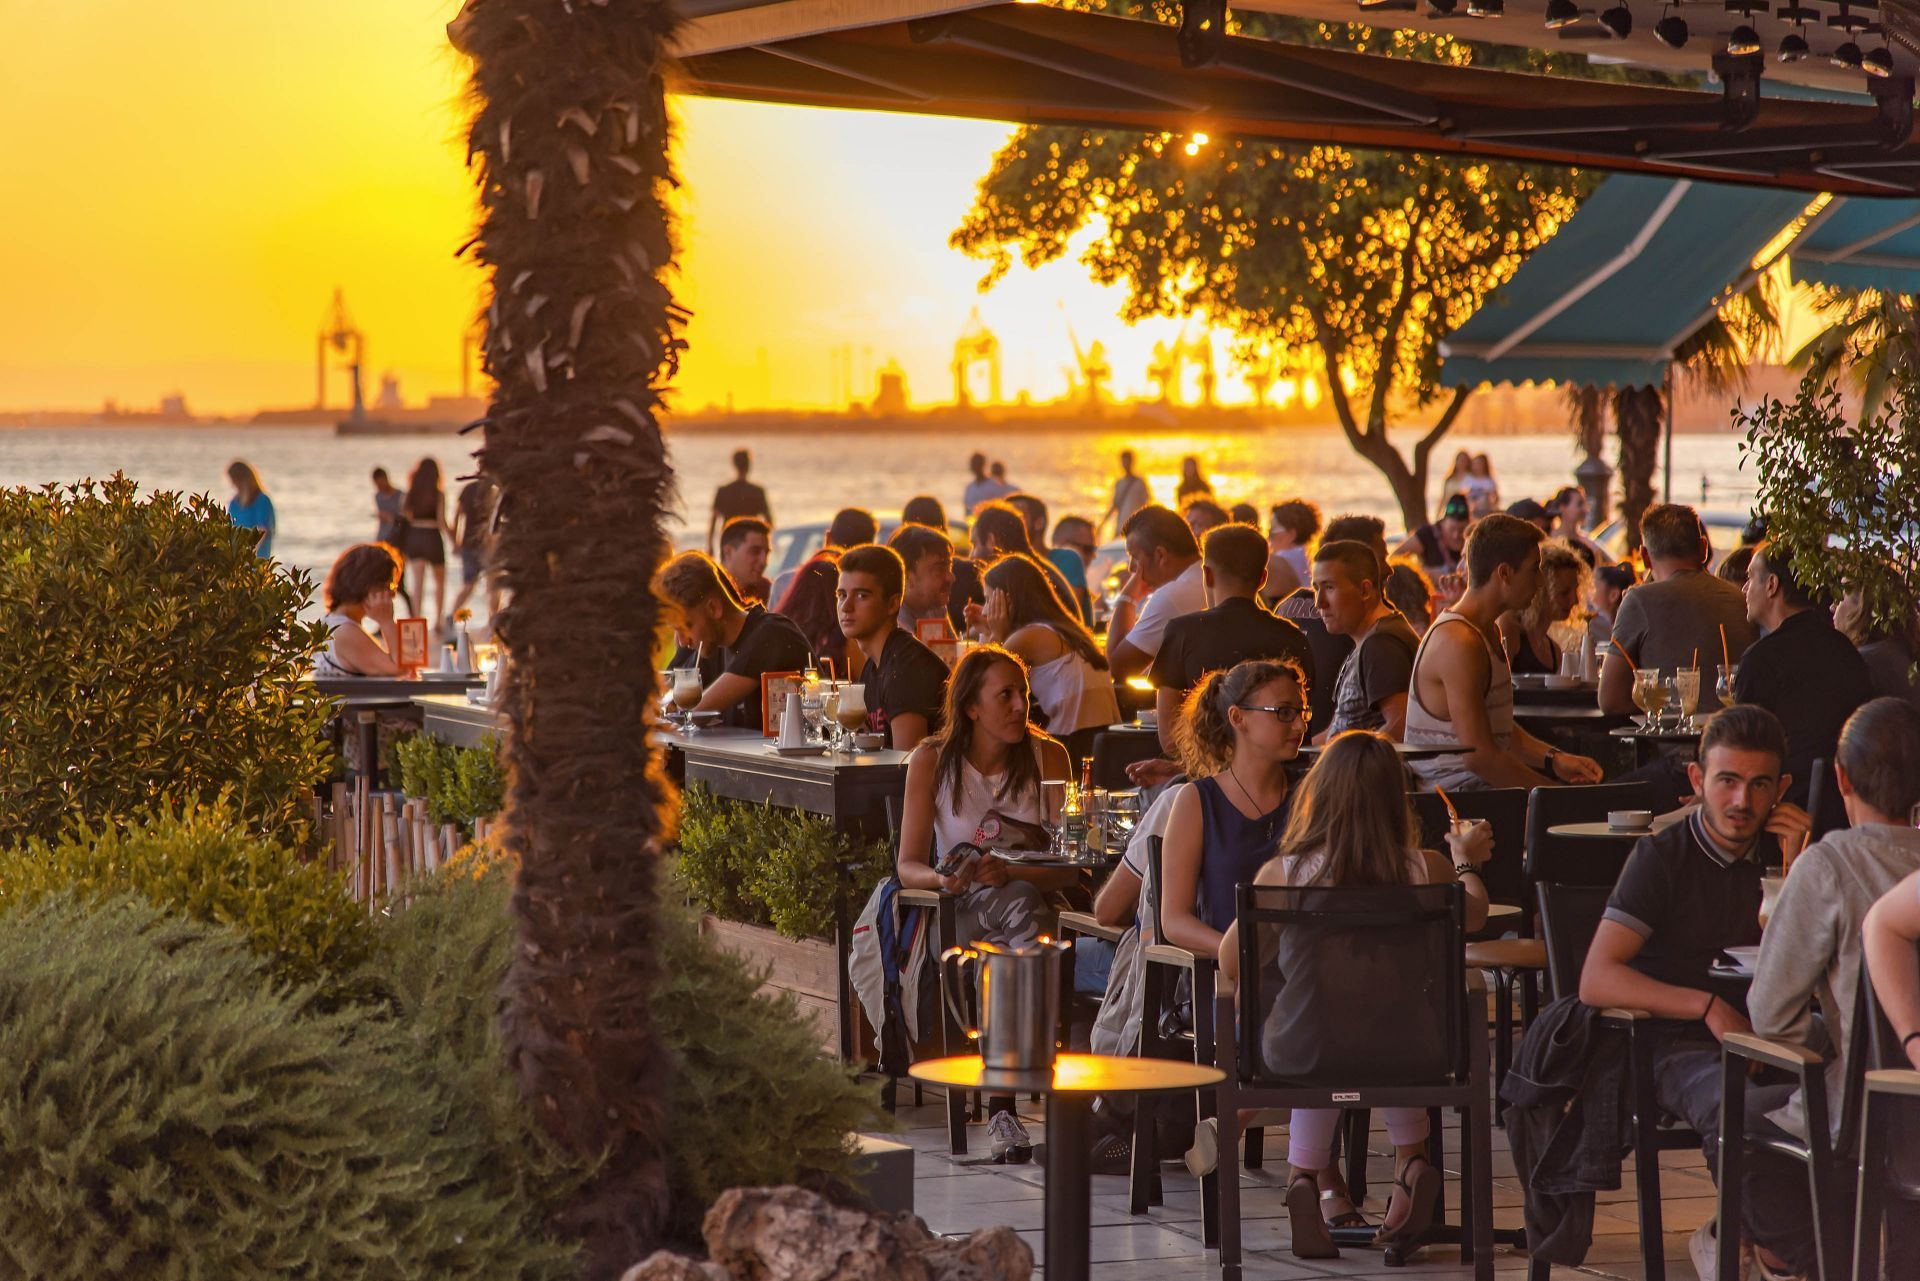 Cafes in Thessaloniki